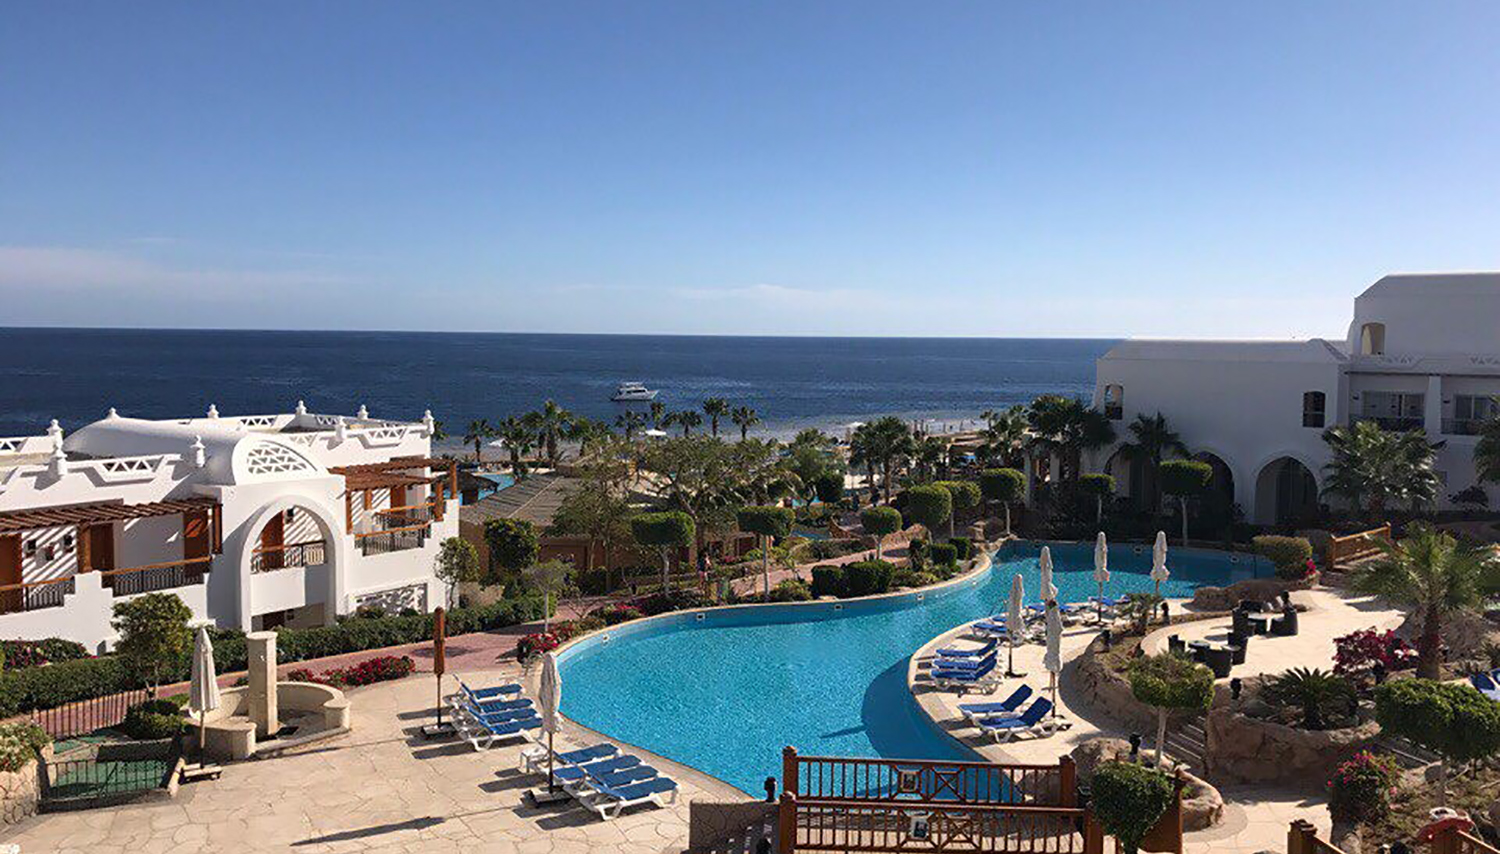 The Grand Hotel Egypt Sharm El Sheikh